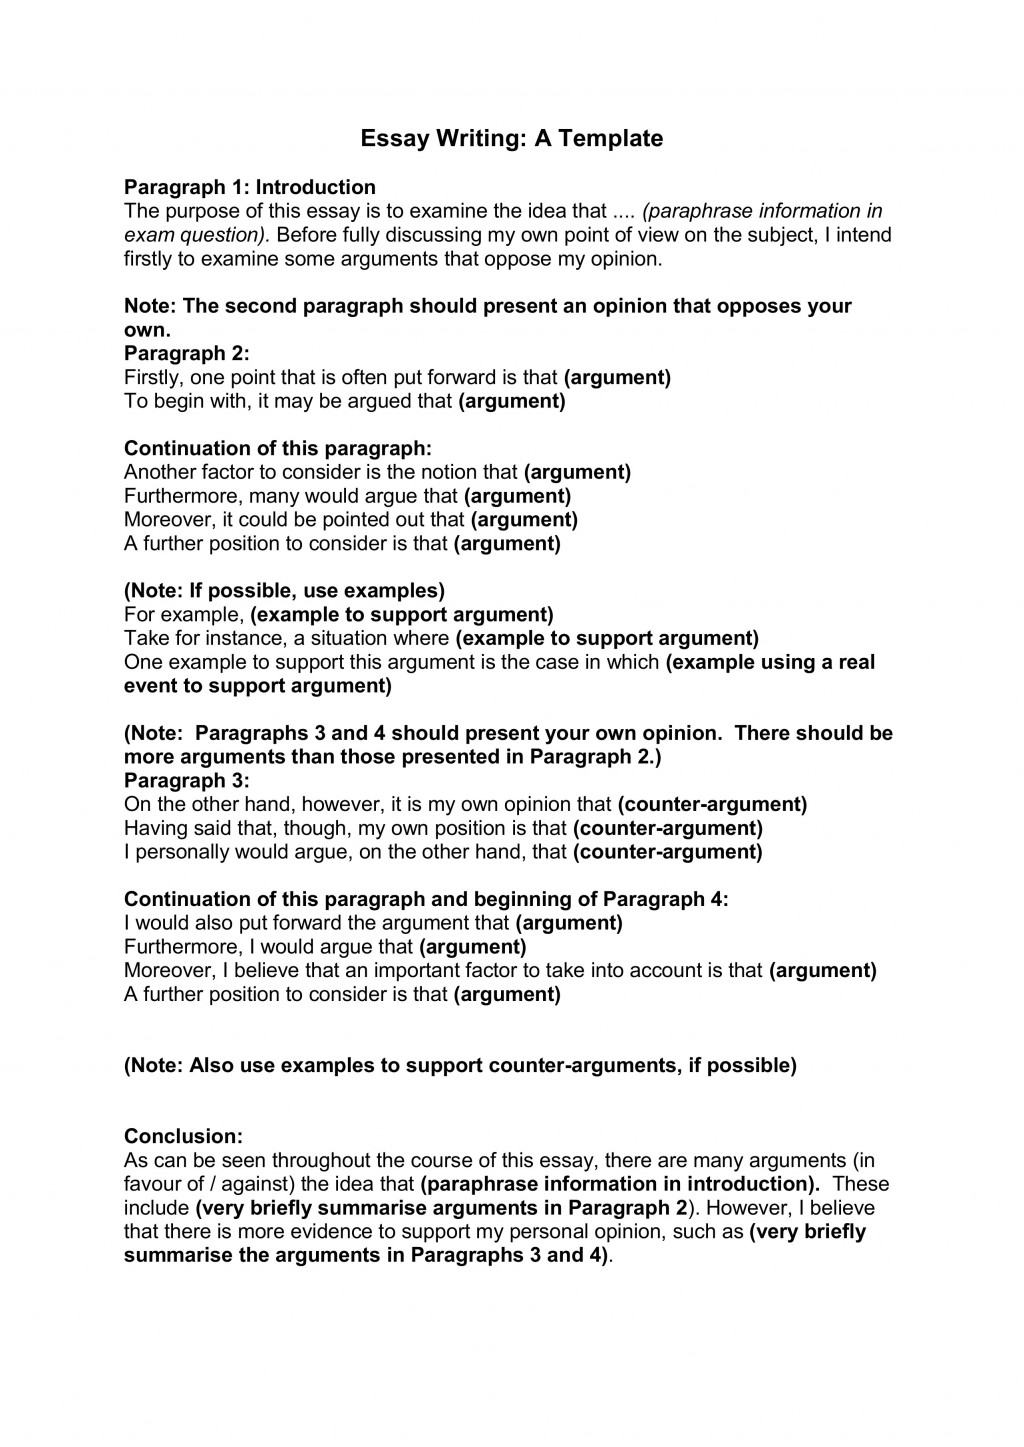 012 Opinion Essay Writing Template For Part How To Write An Magnificent Prompts 6th Grade Examples 3rd Large